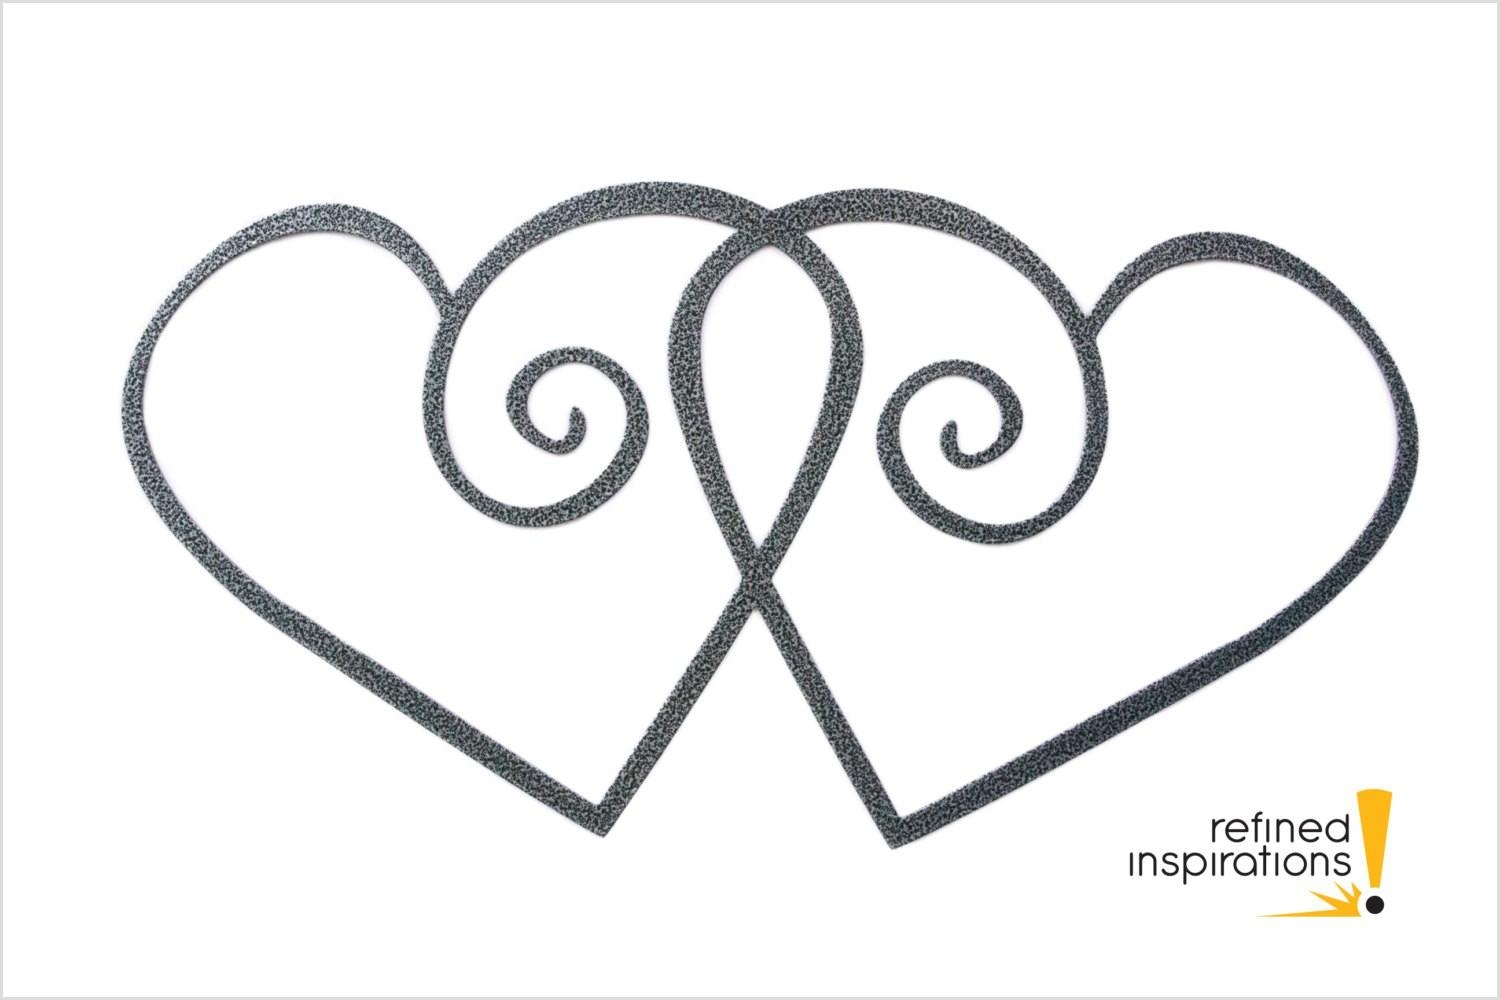 Heart Shaped Metal Wall Art Photos That Really Gorgeous – Desainnow Pertaining To Heart Shaped Metal Wall Art (Image 6 of 20)